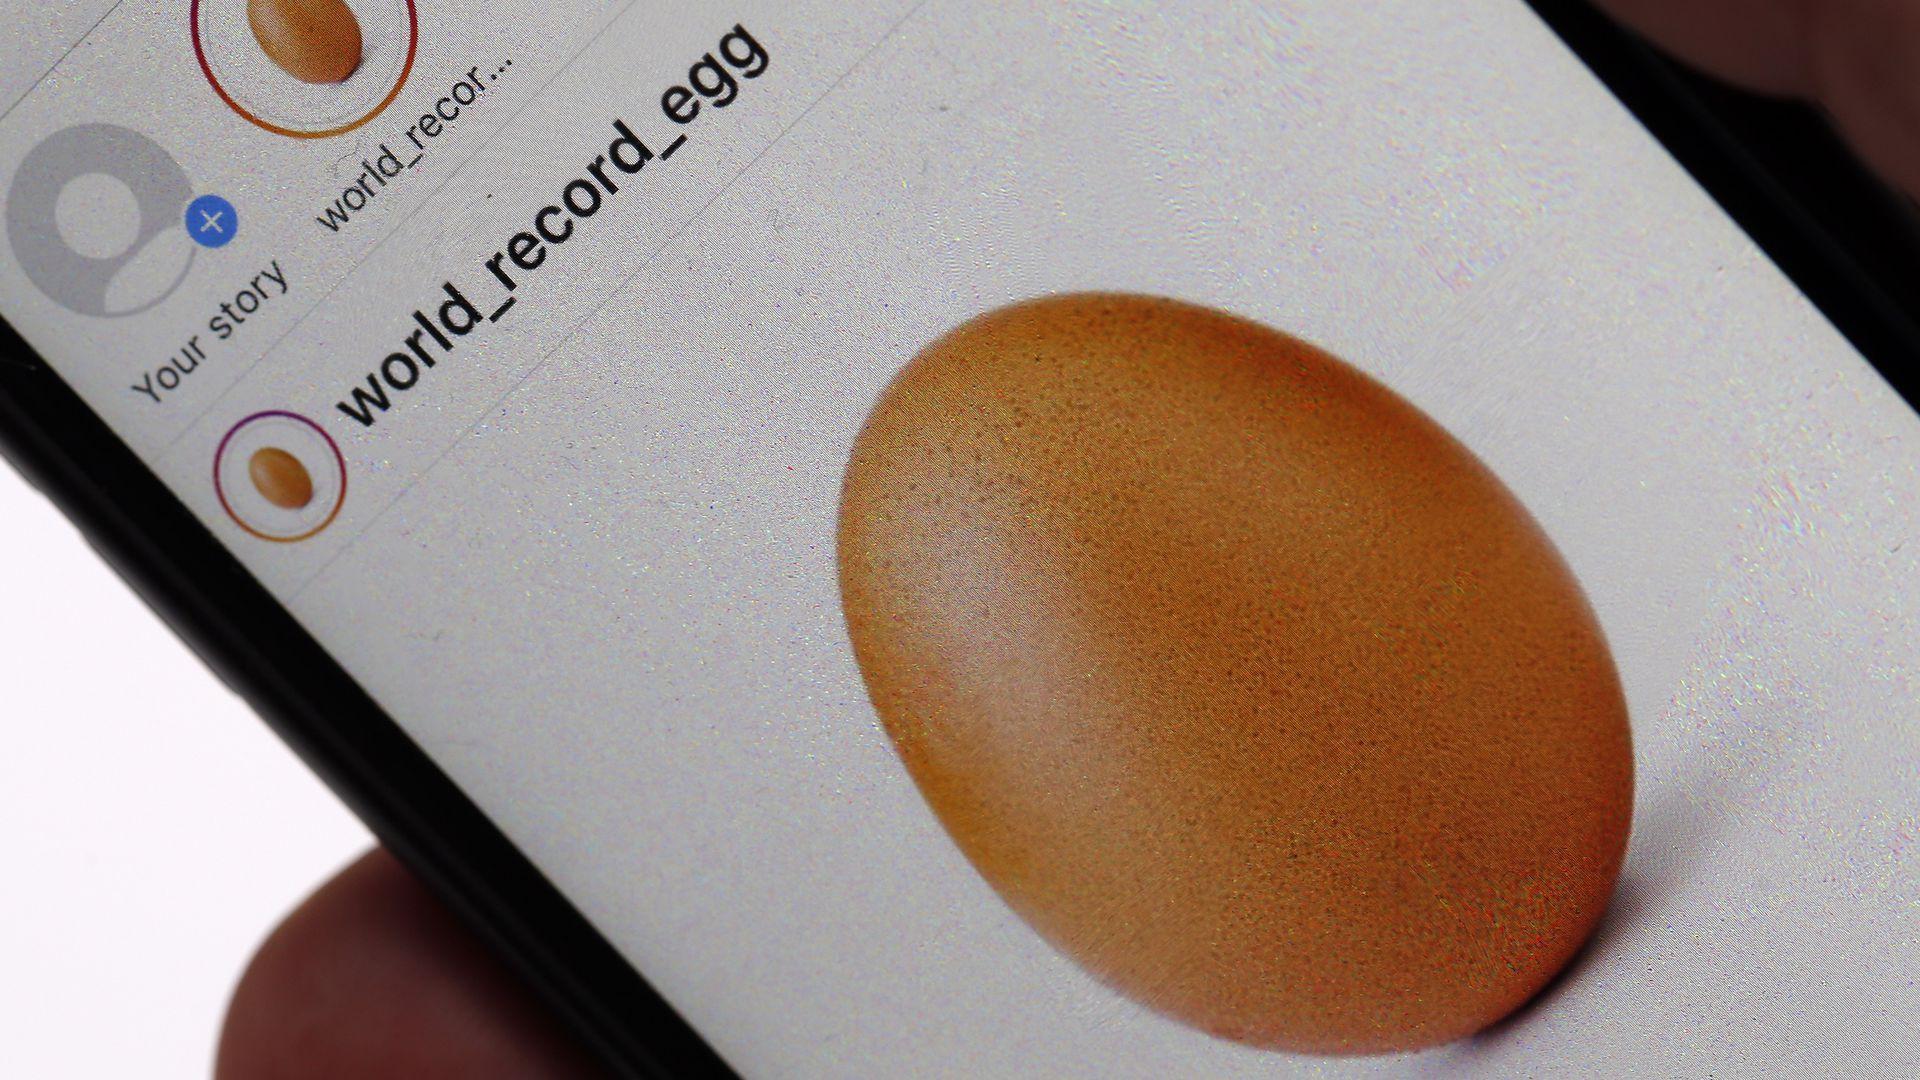 In this illustration photo, a mobile phone shows the image of an egg which was posted on the Instagram social network on January 14, 2019 in Paris, France